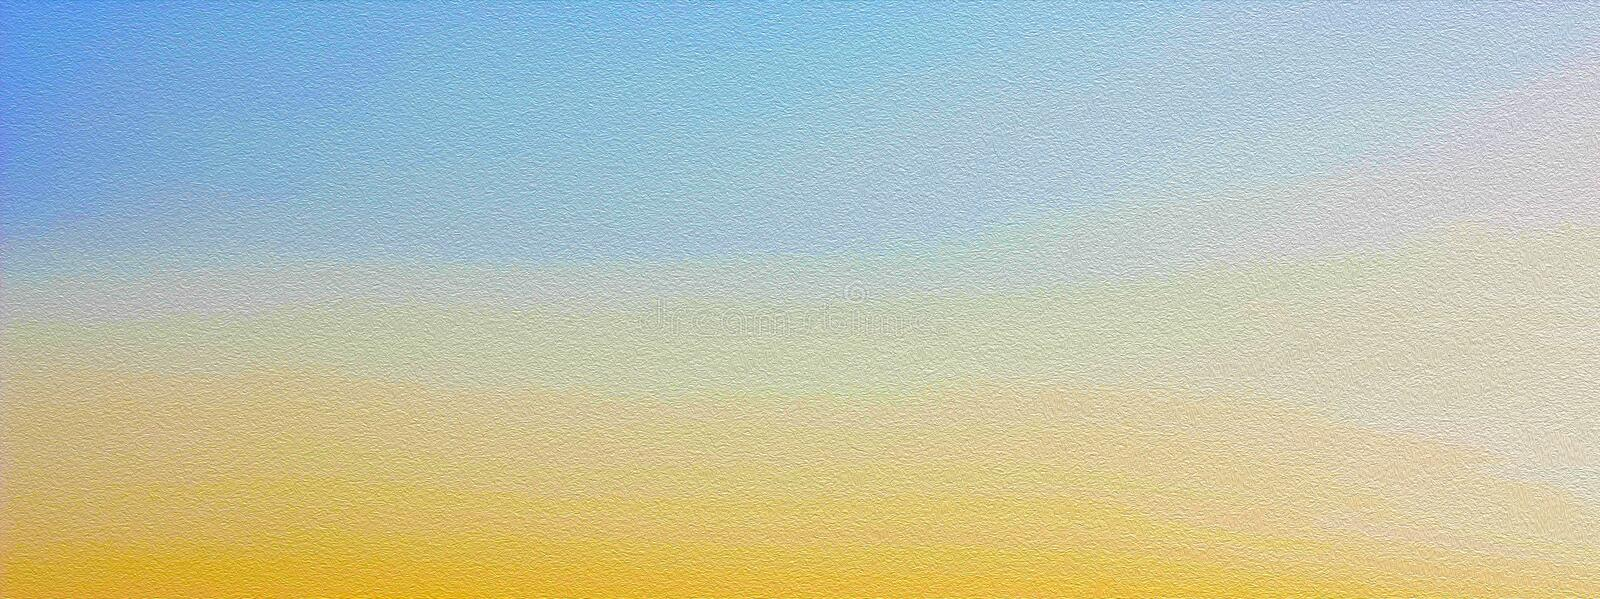 Dawn sky in golden tones, background in blue and yellow colors, stylized painting. stock photo